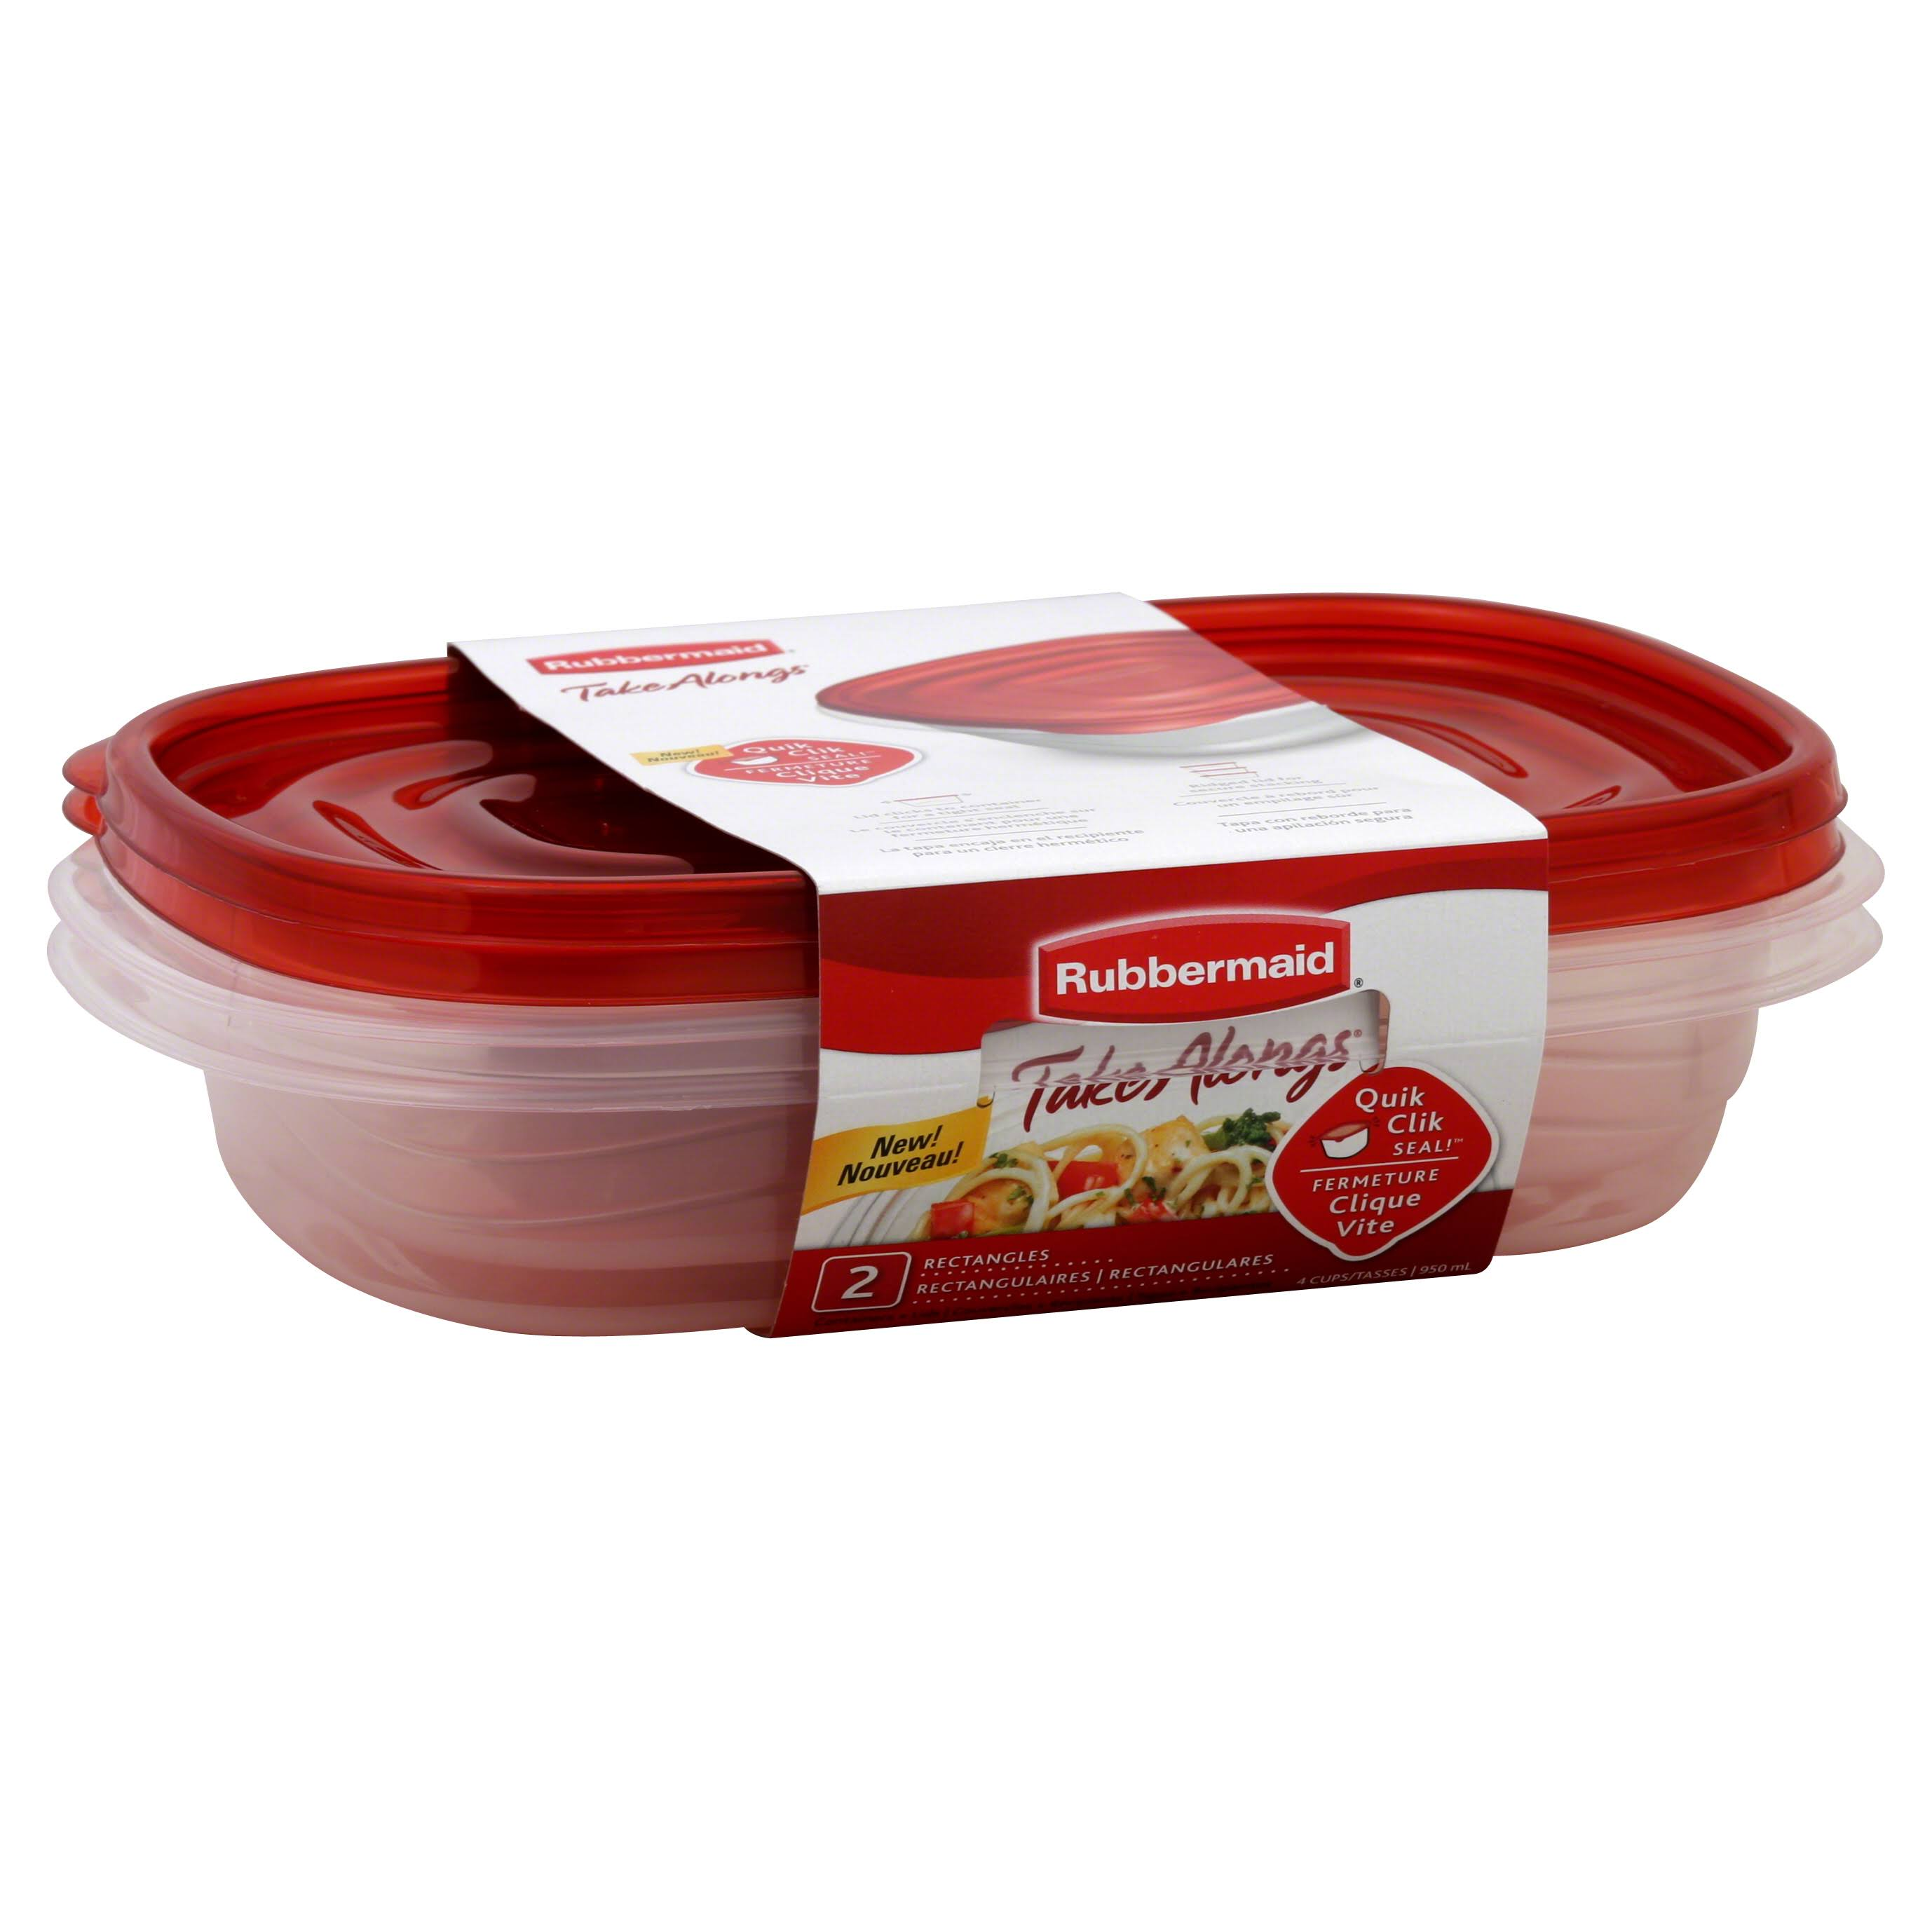 Rubbermaid Takealongs Container - with Lids, Rectangles, 4Cups